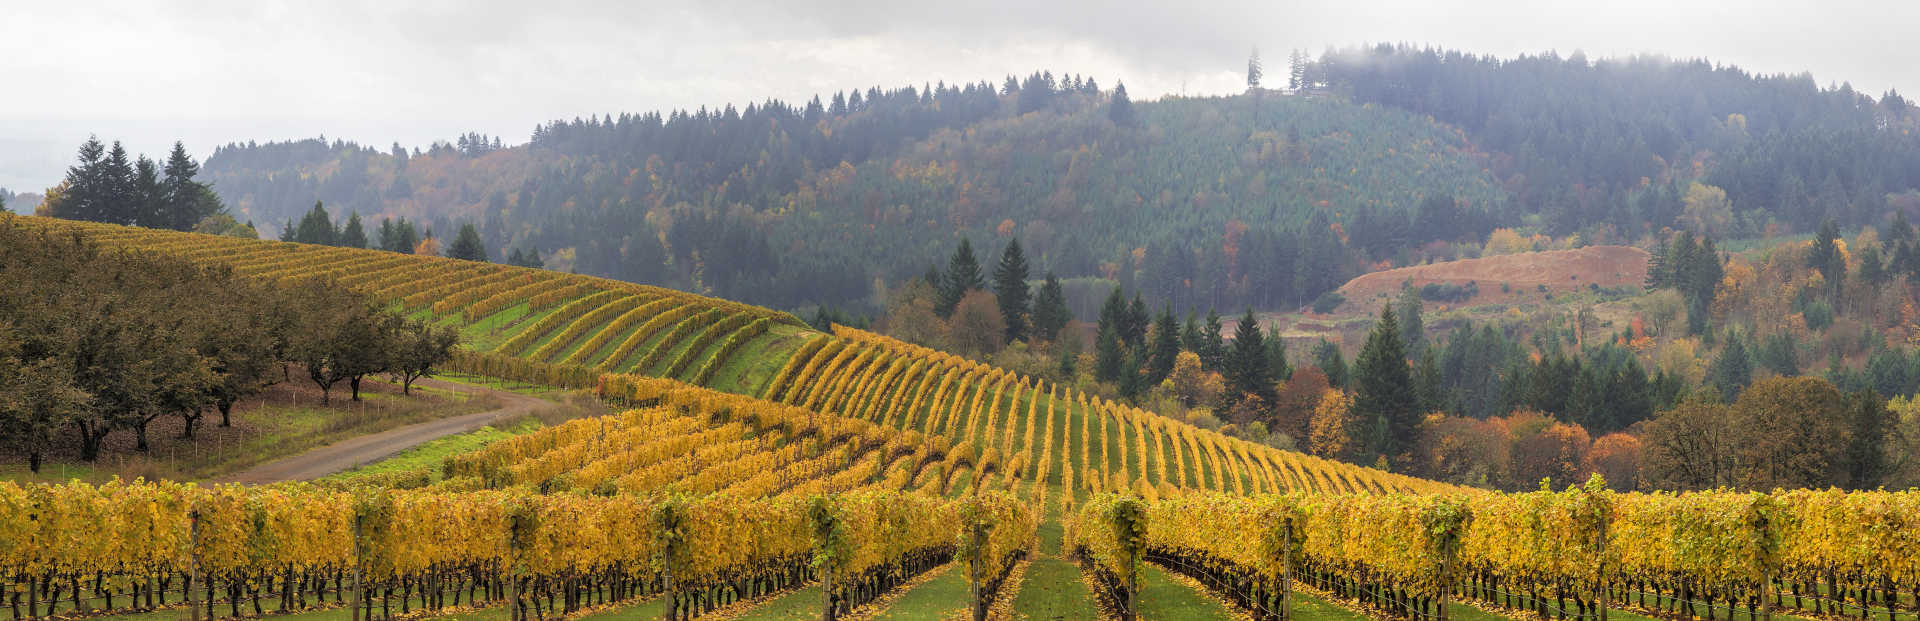 Image for Dundee Hills Wine Willamette Valley, Oregon content section